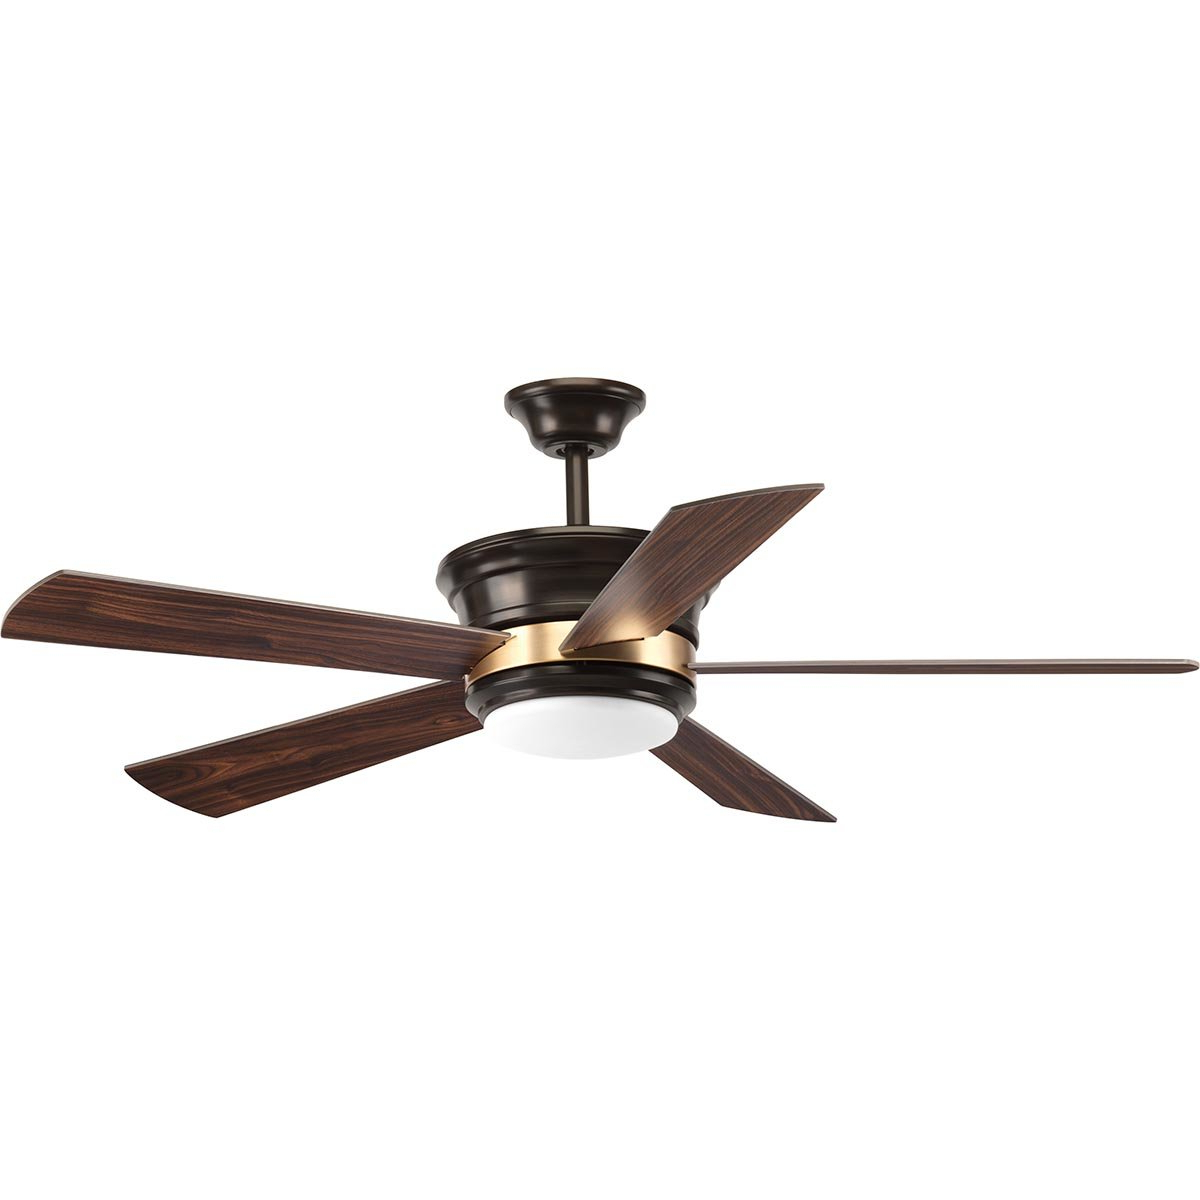 "54"" Seaton 5 Blade Led Ceiling Fan With Remote For Newest Wilburton 5 Blade Ceiling Fans With Remote (View 12 of 20)"